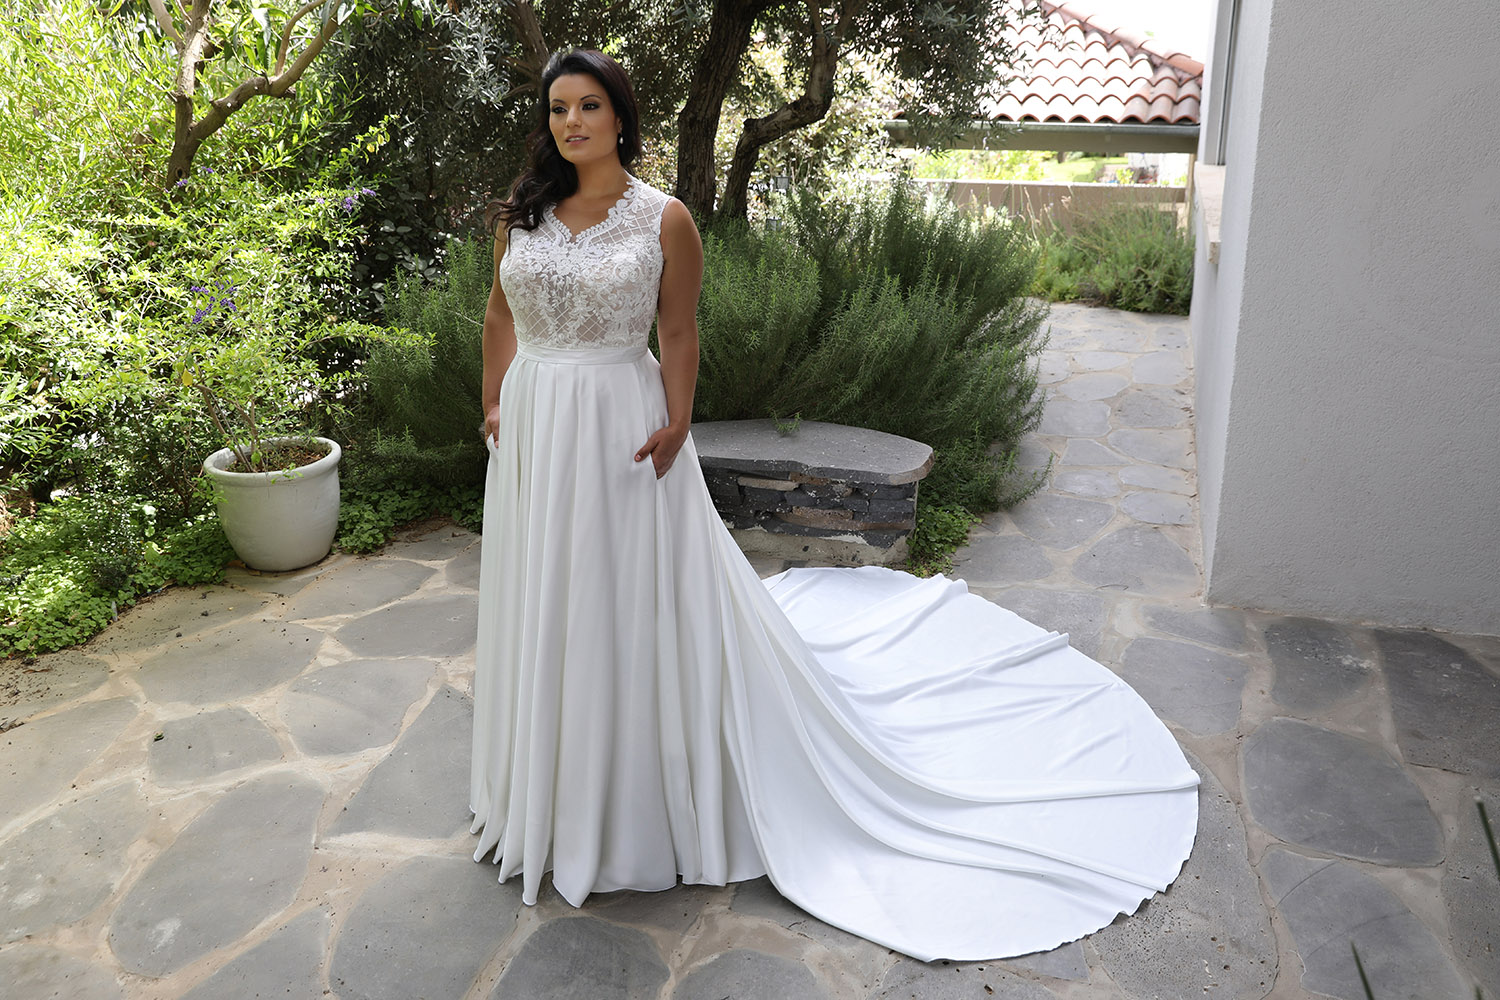 Paola by studio levana plus size weddind dress with lace and pearls top and a saten skirt with pockets